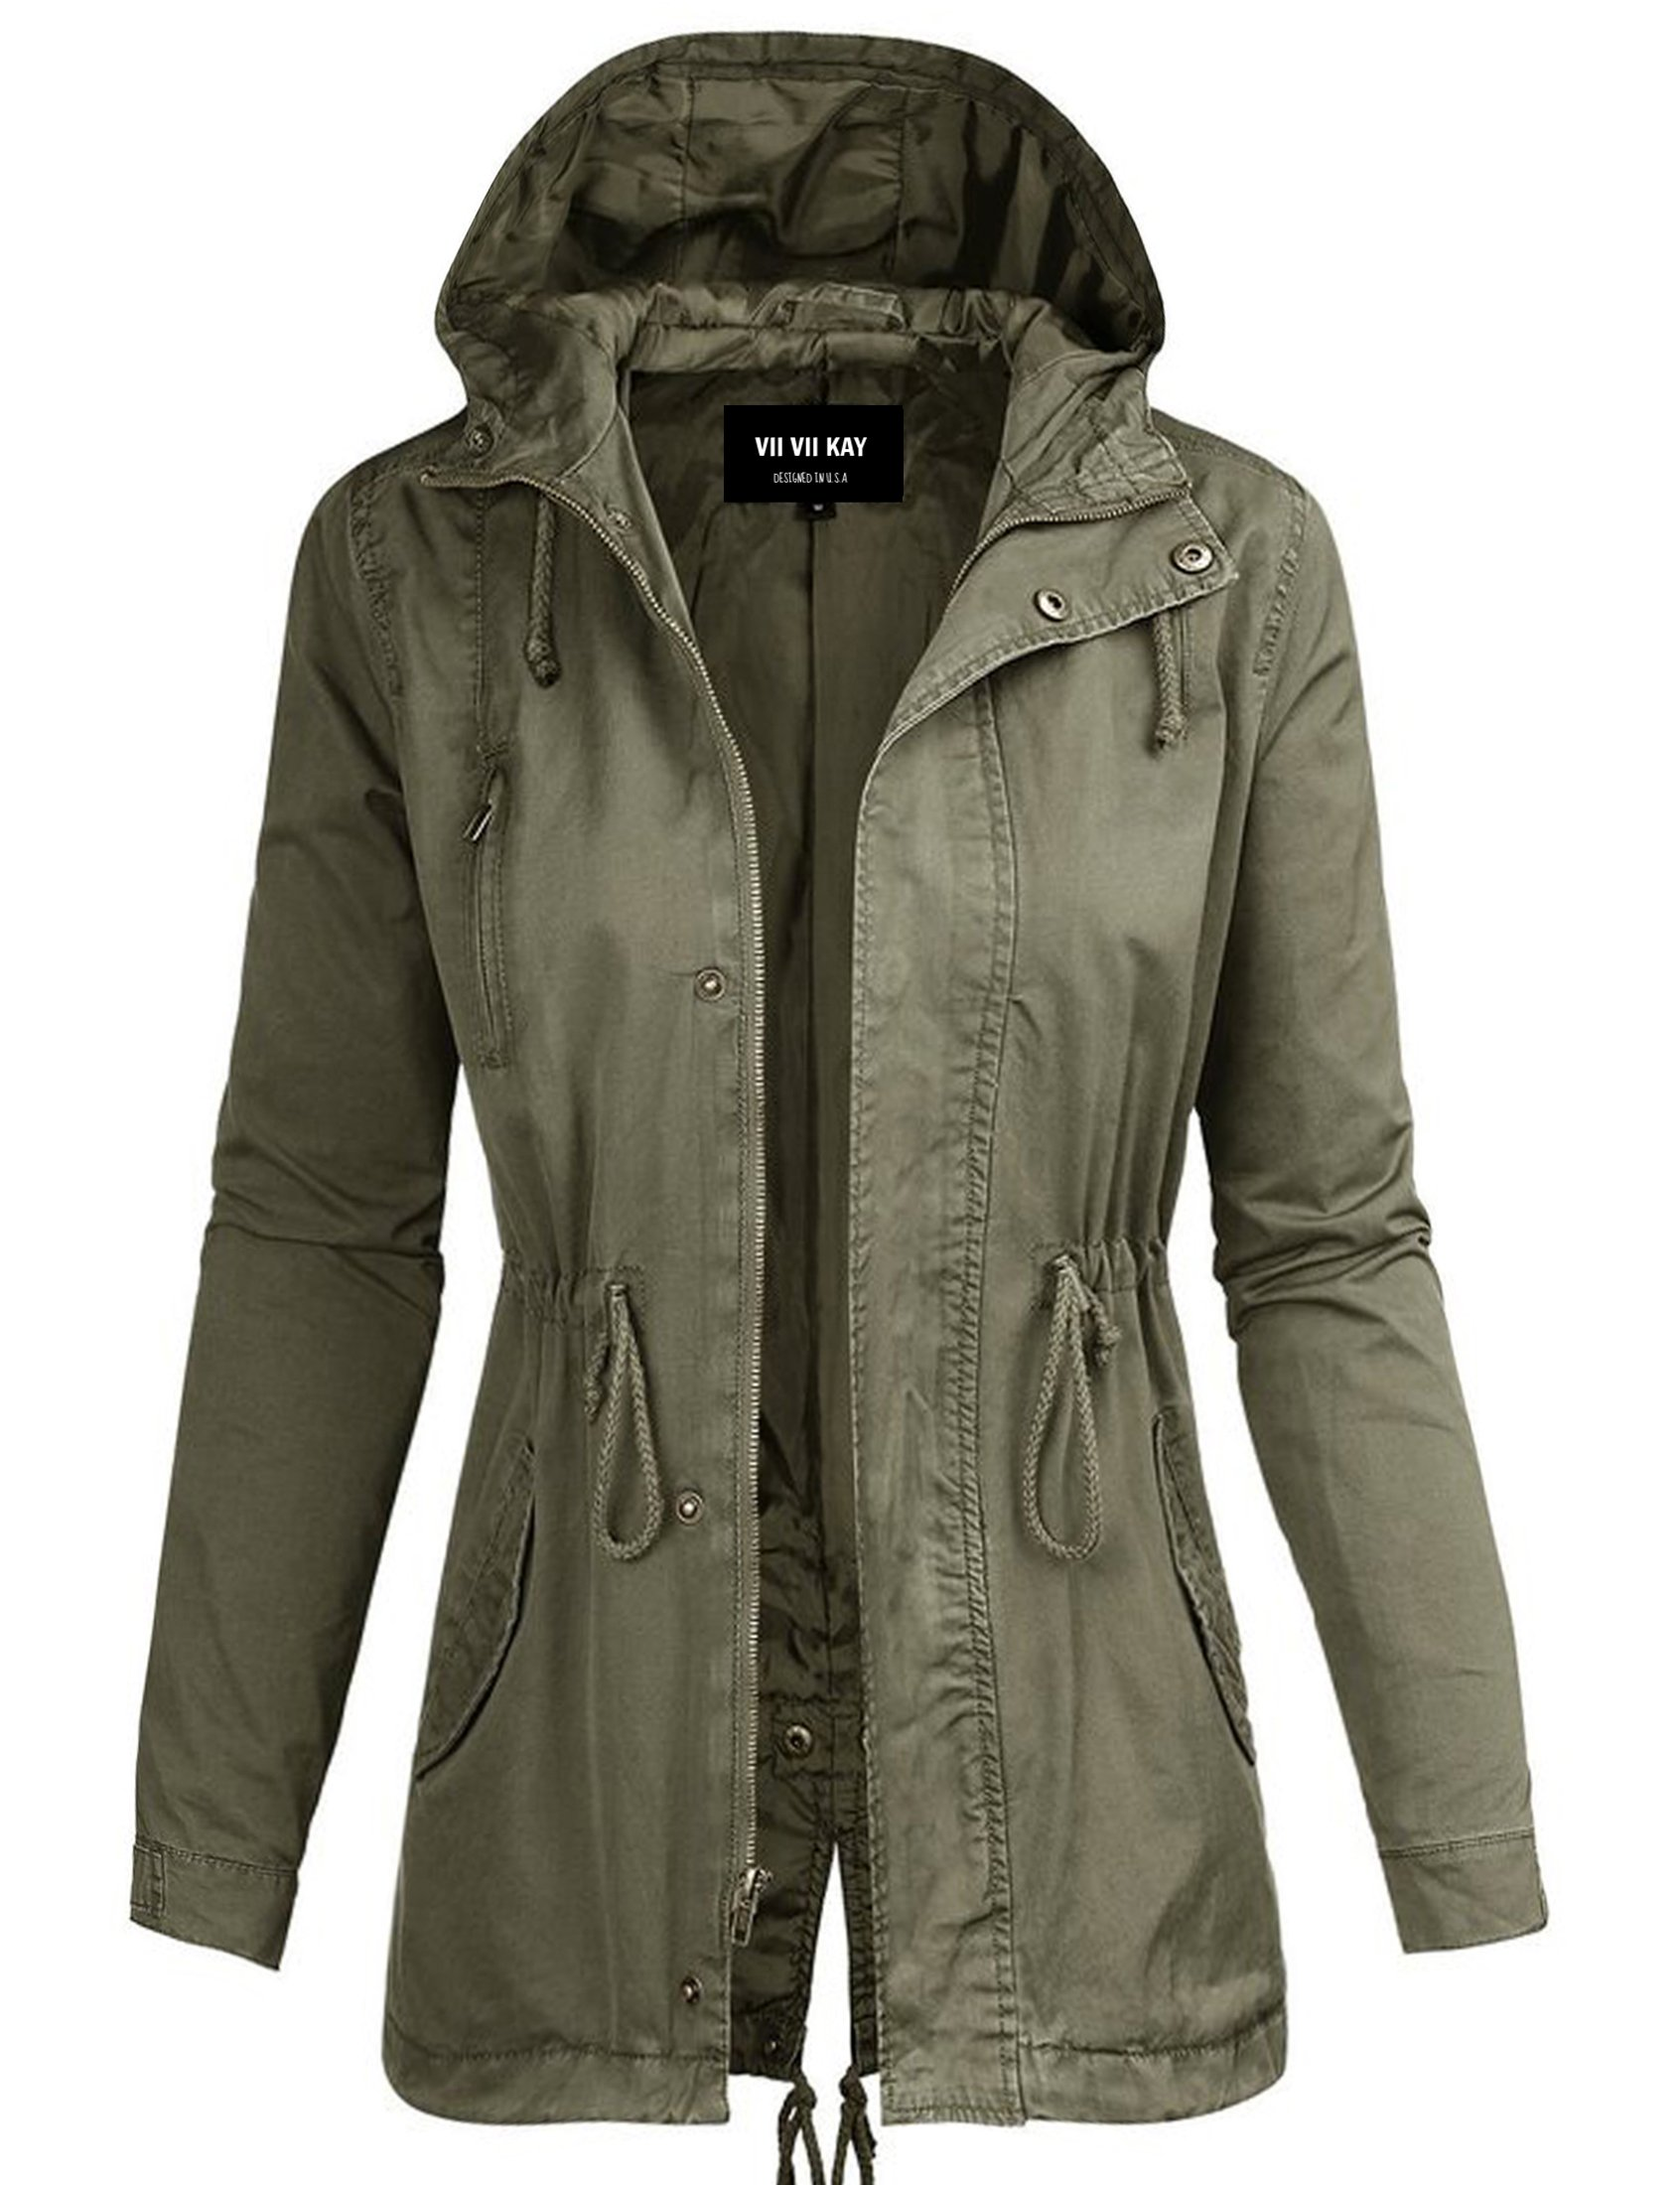 ViiViiKay Womens Cotton Anorak Lightweight Utility Parka Jackets with Drawstring 43J OLIVE L